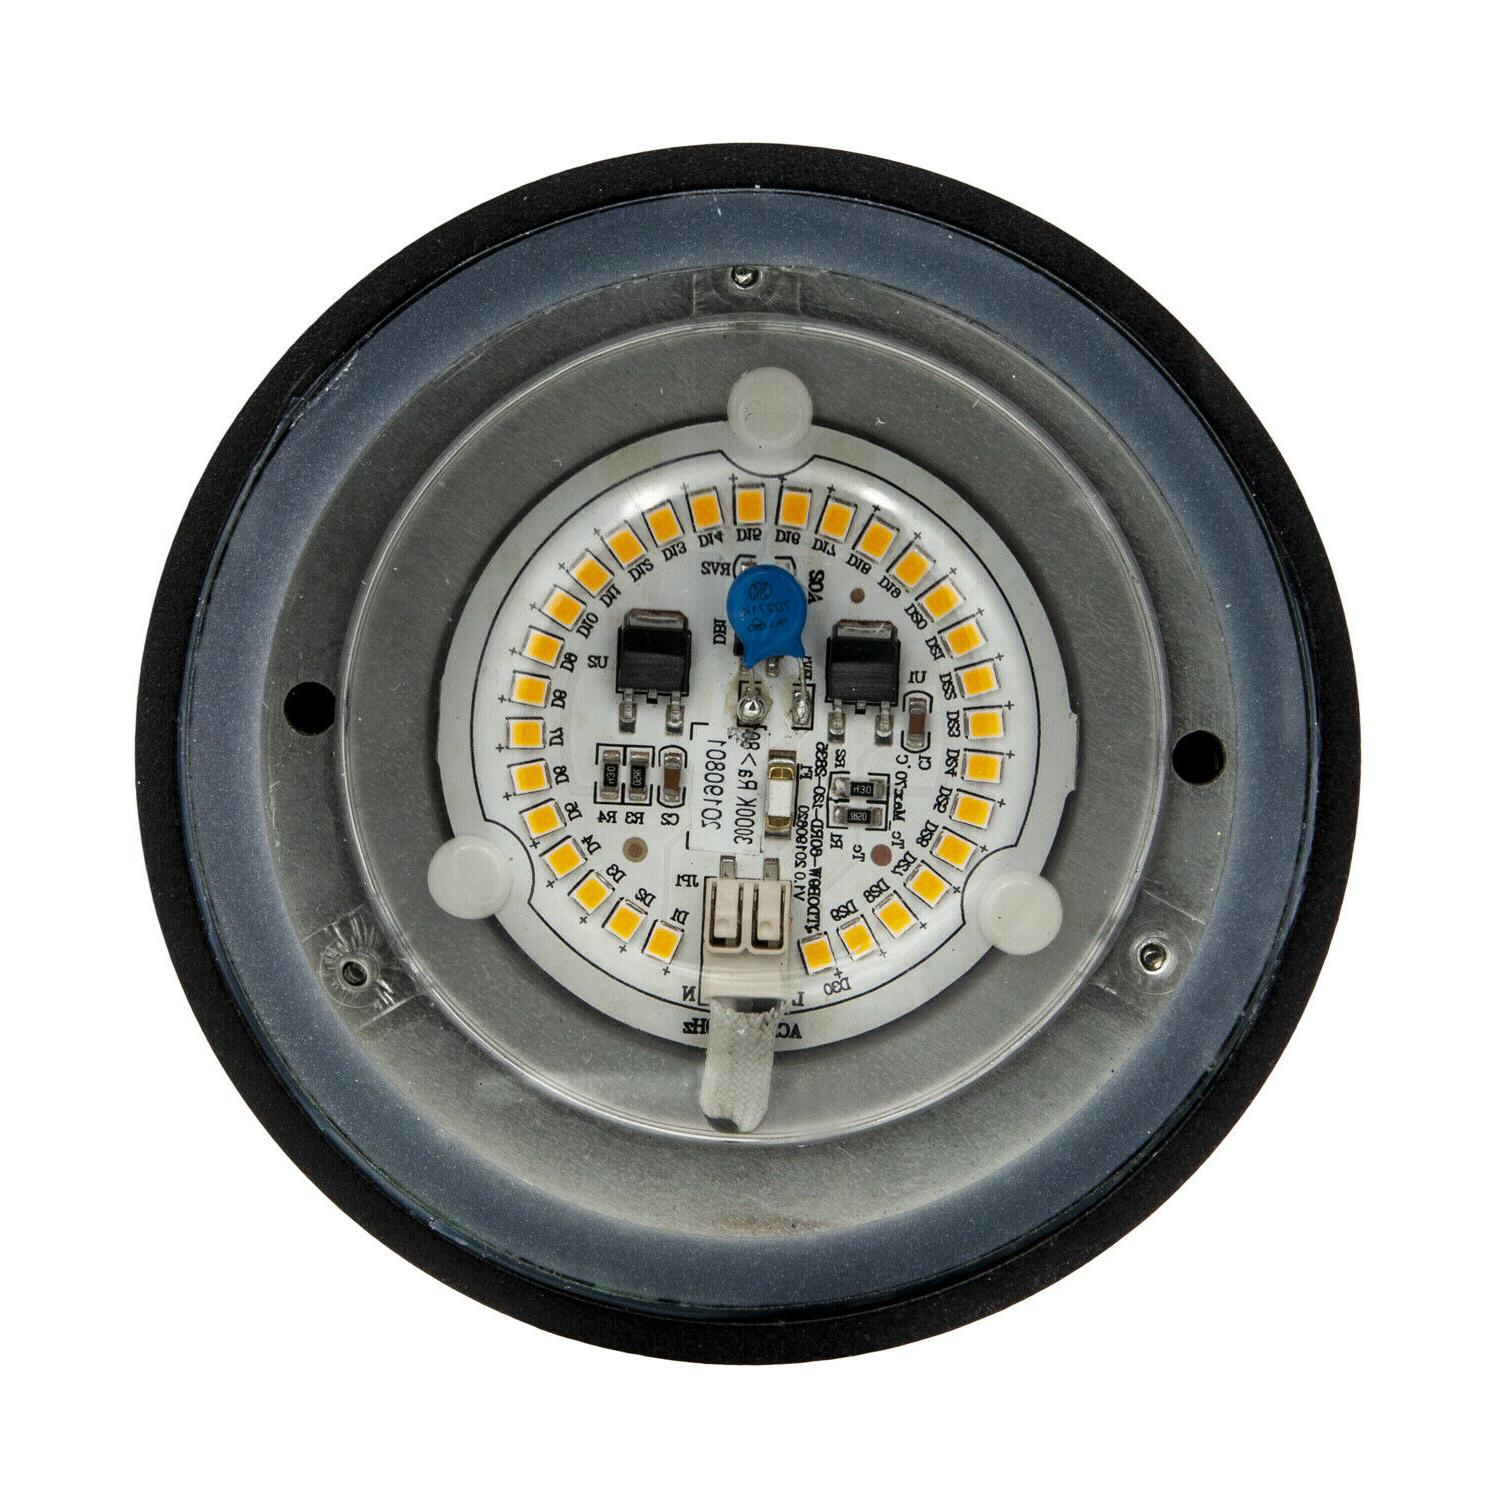 Maxxima LED Cylinder Outdoor Wall Sconce Light 840 Photocell